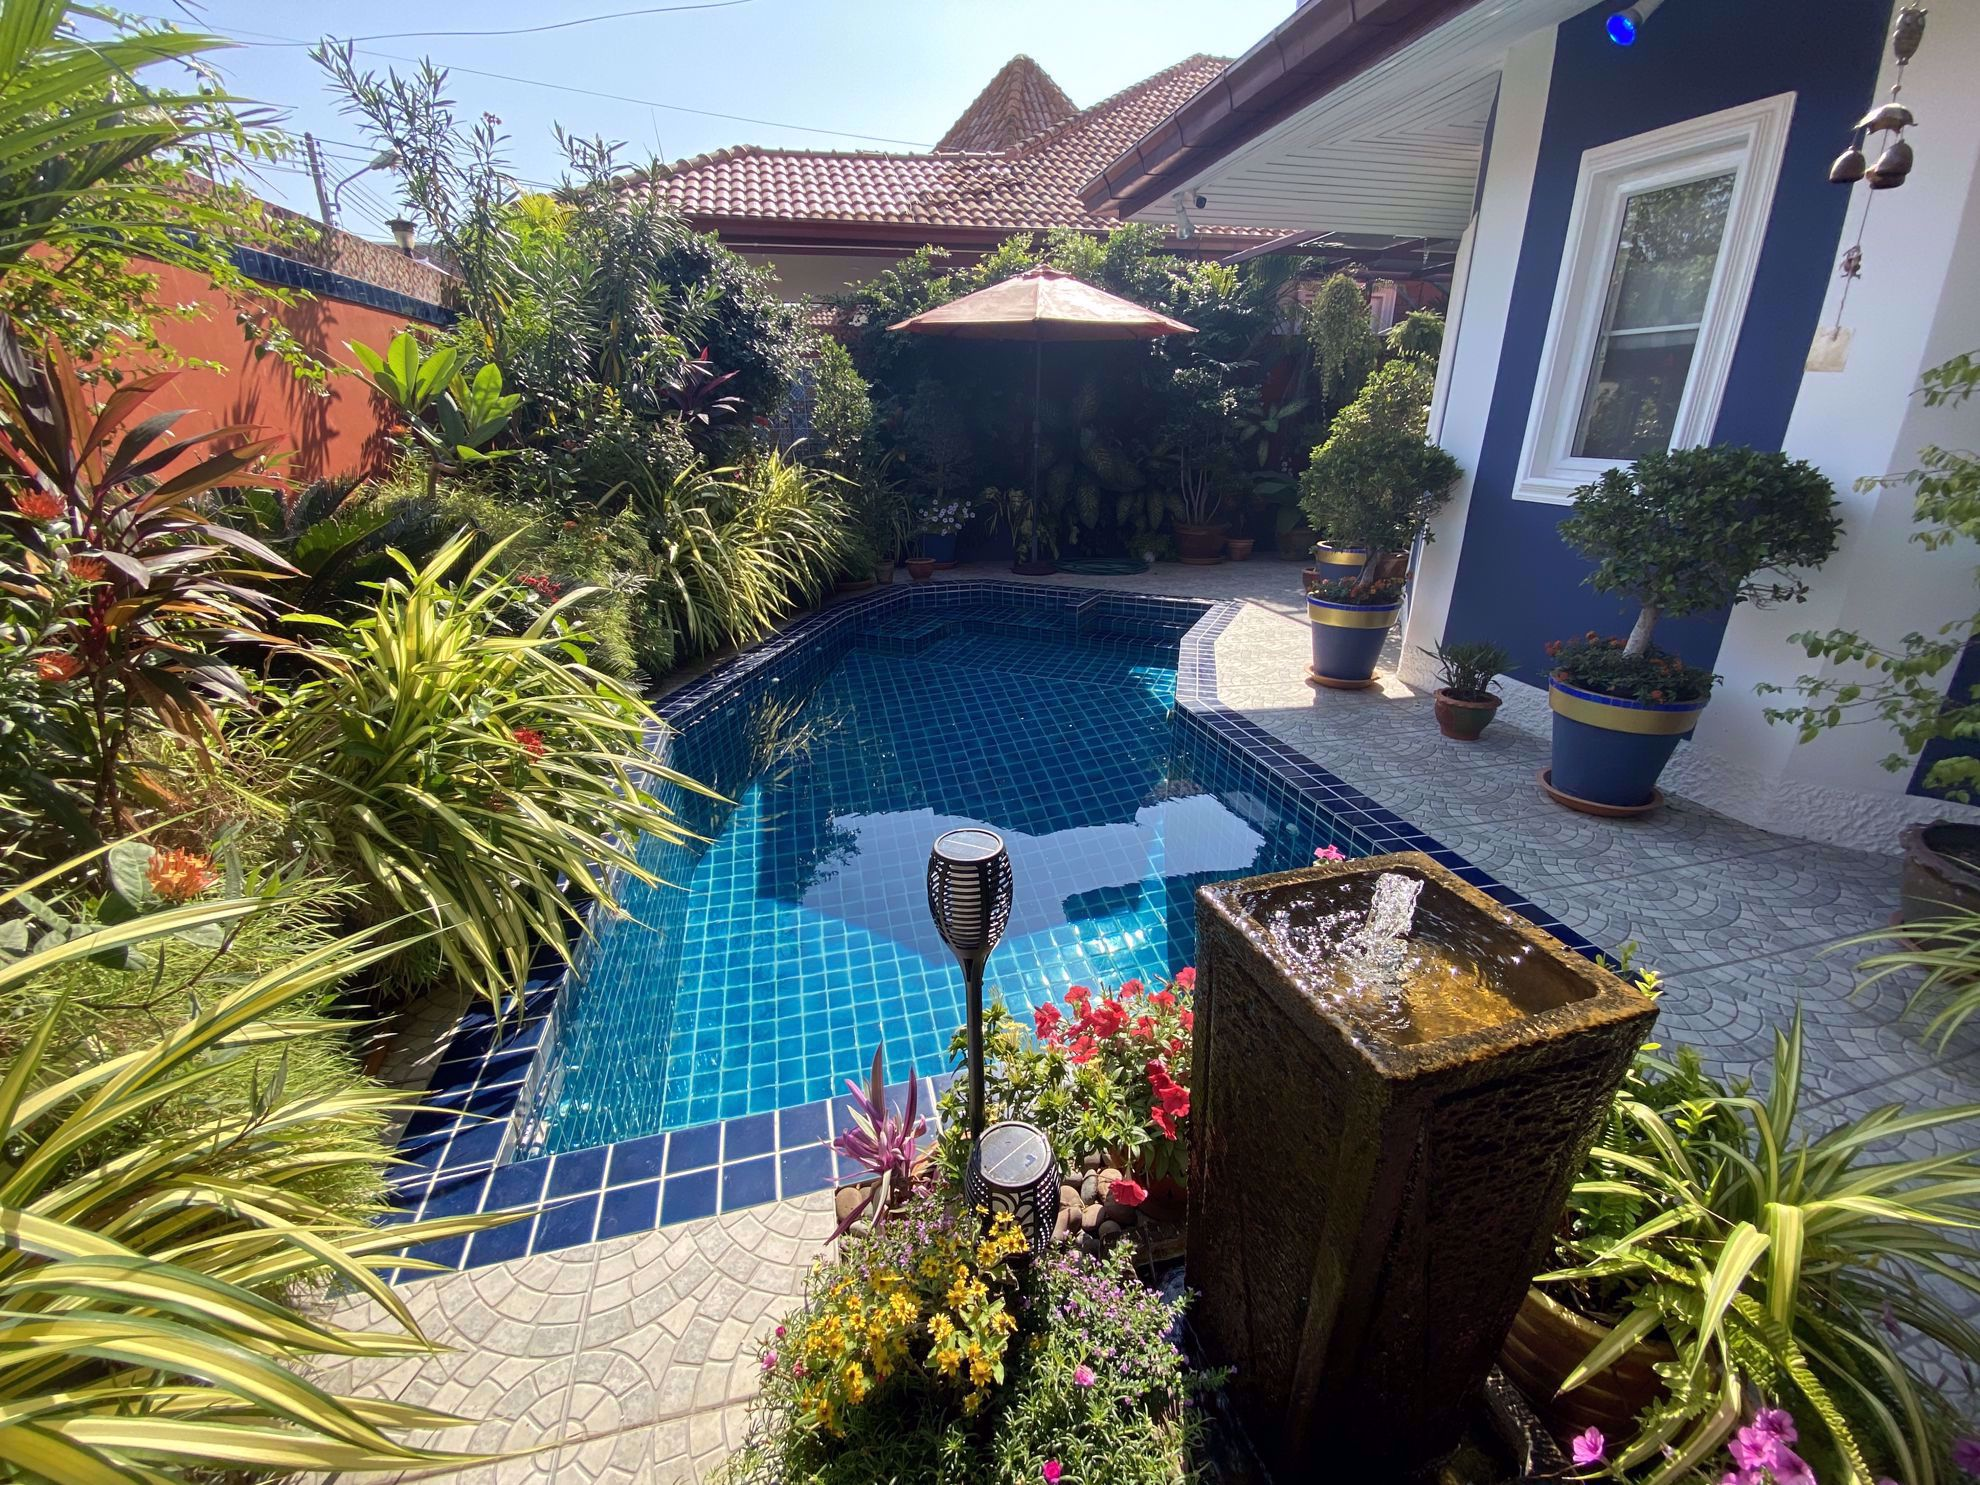 图片 3 Bedrooms bed in House in Grand TW Home 2 in South Pattaya H008962